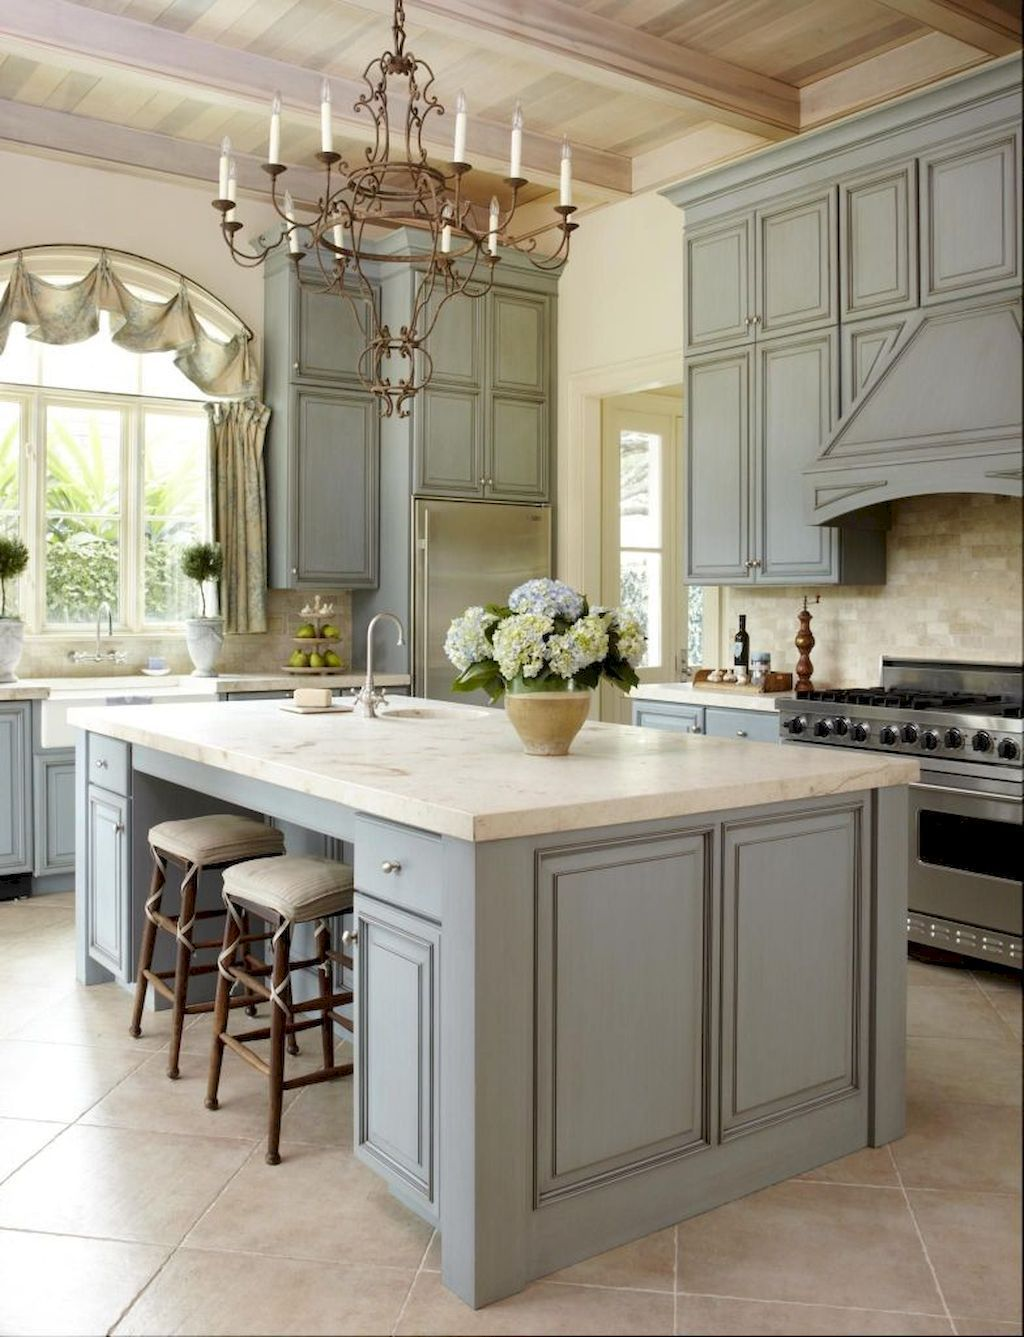 Best 59 Simple French Country Kitchen Decor Ideas In 2019 400 x 300